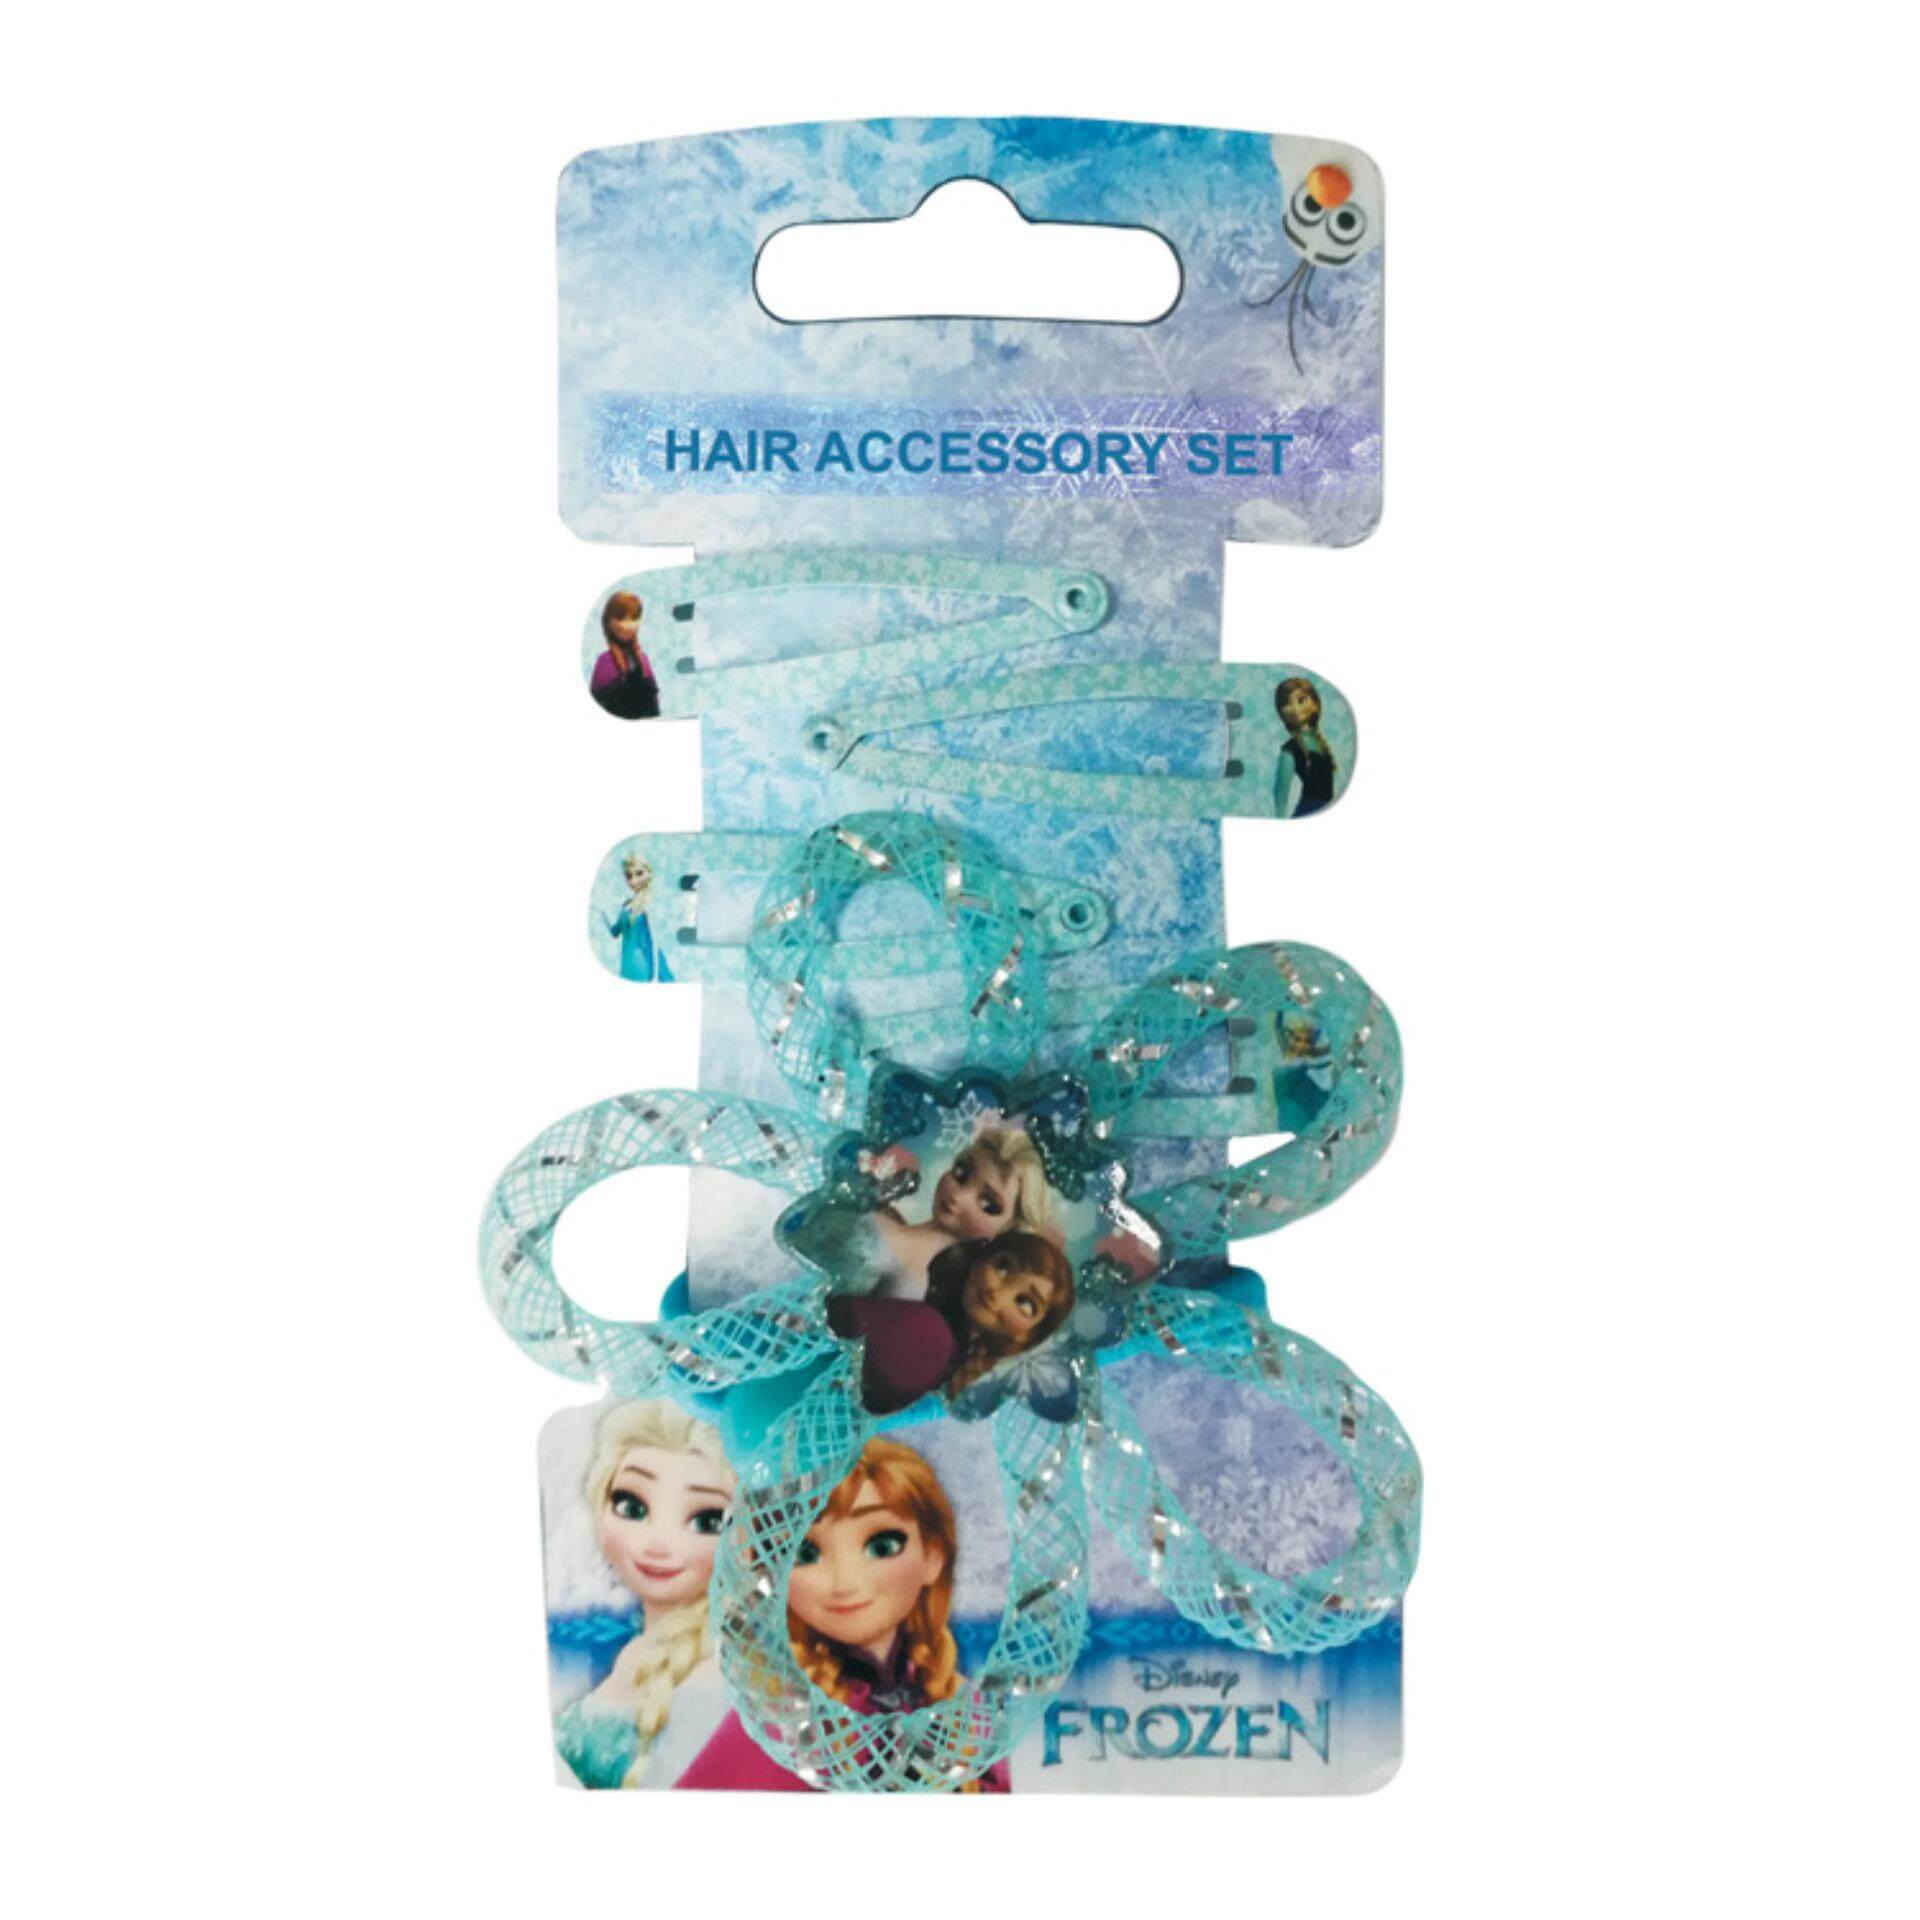 Disney Princess Frozen 2 In 1 Girls Elastic Rope Hair Ponytail Holders, Tic Tac Hair Clips Hair Accessories Set - Blue Colour